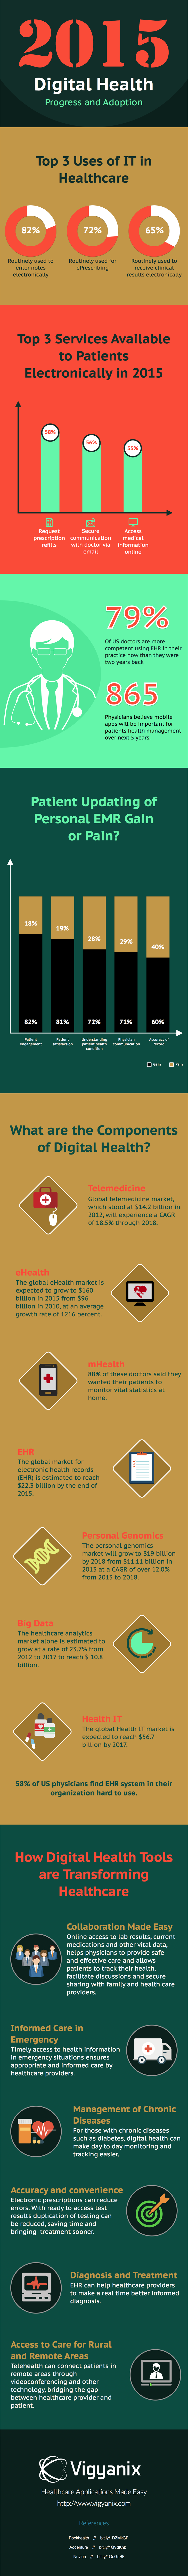 digital health -infographic